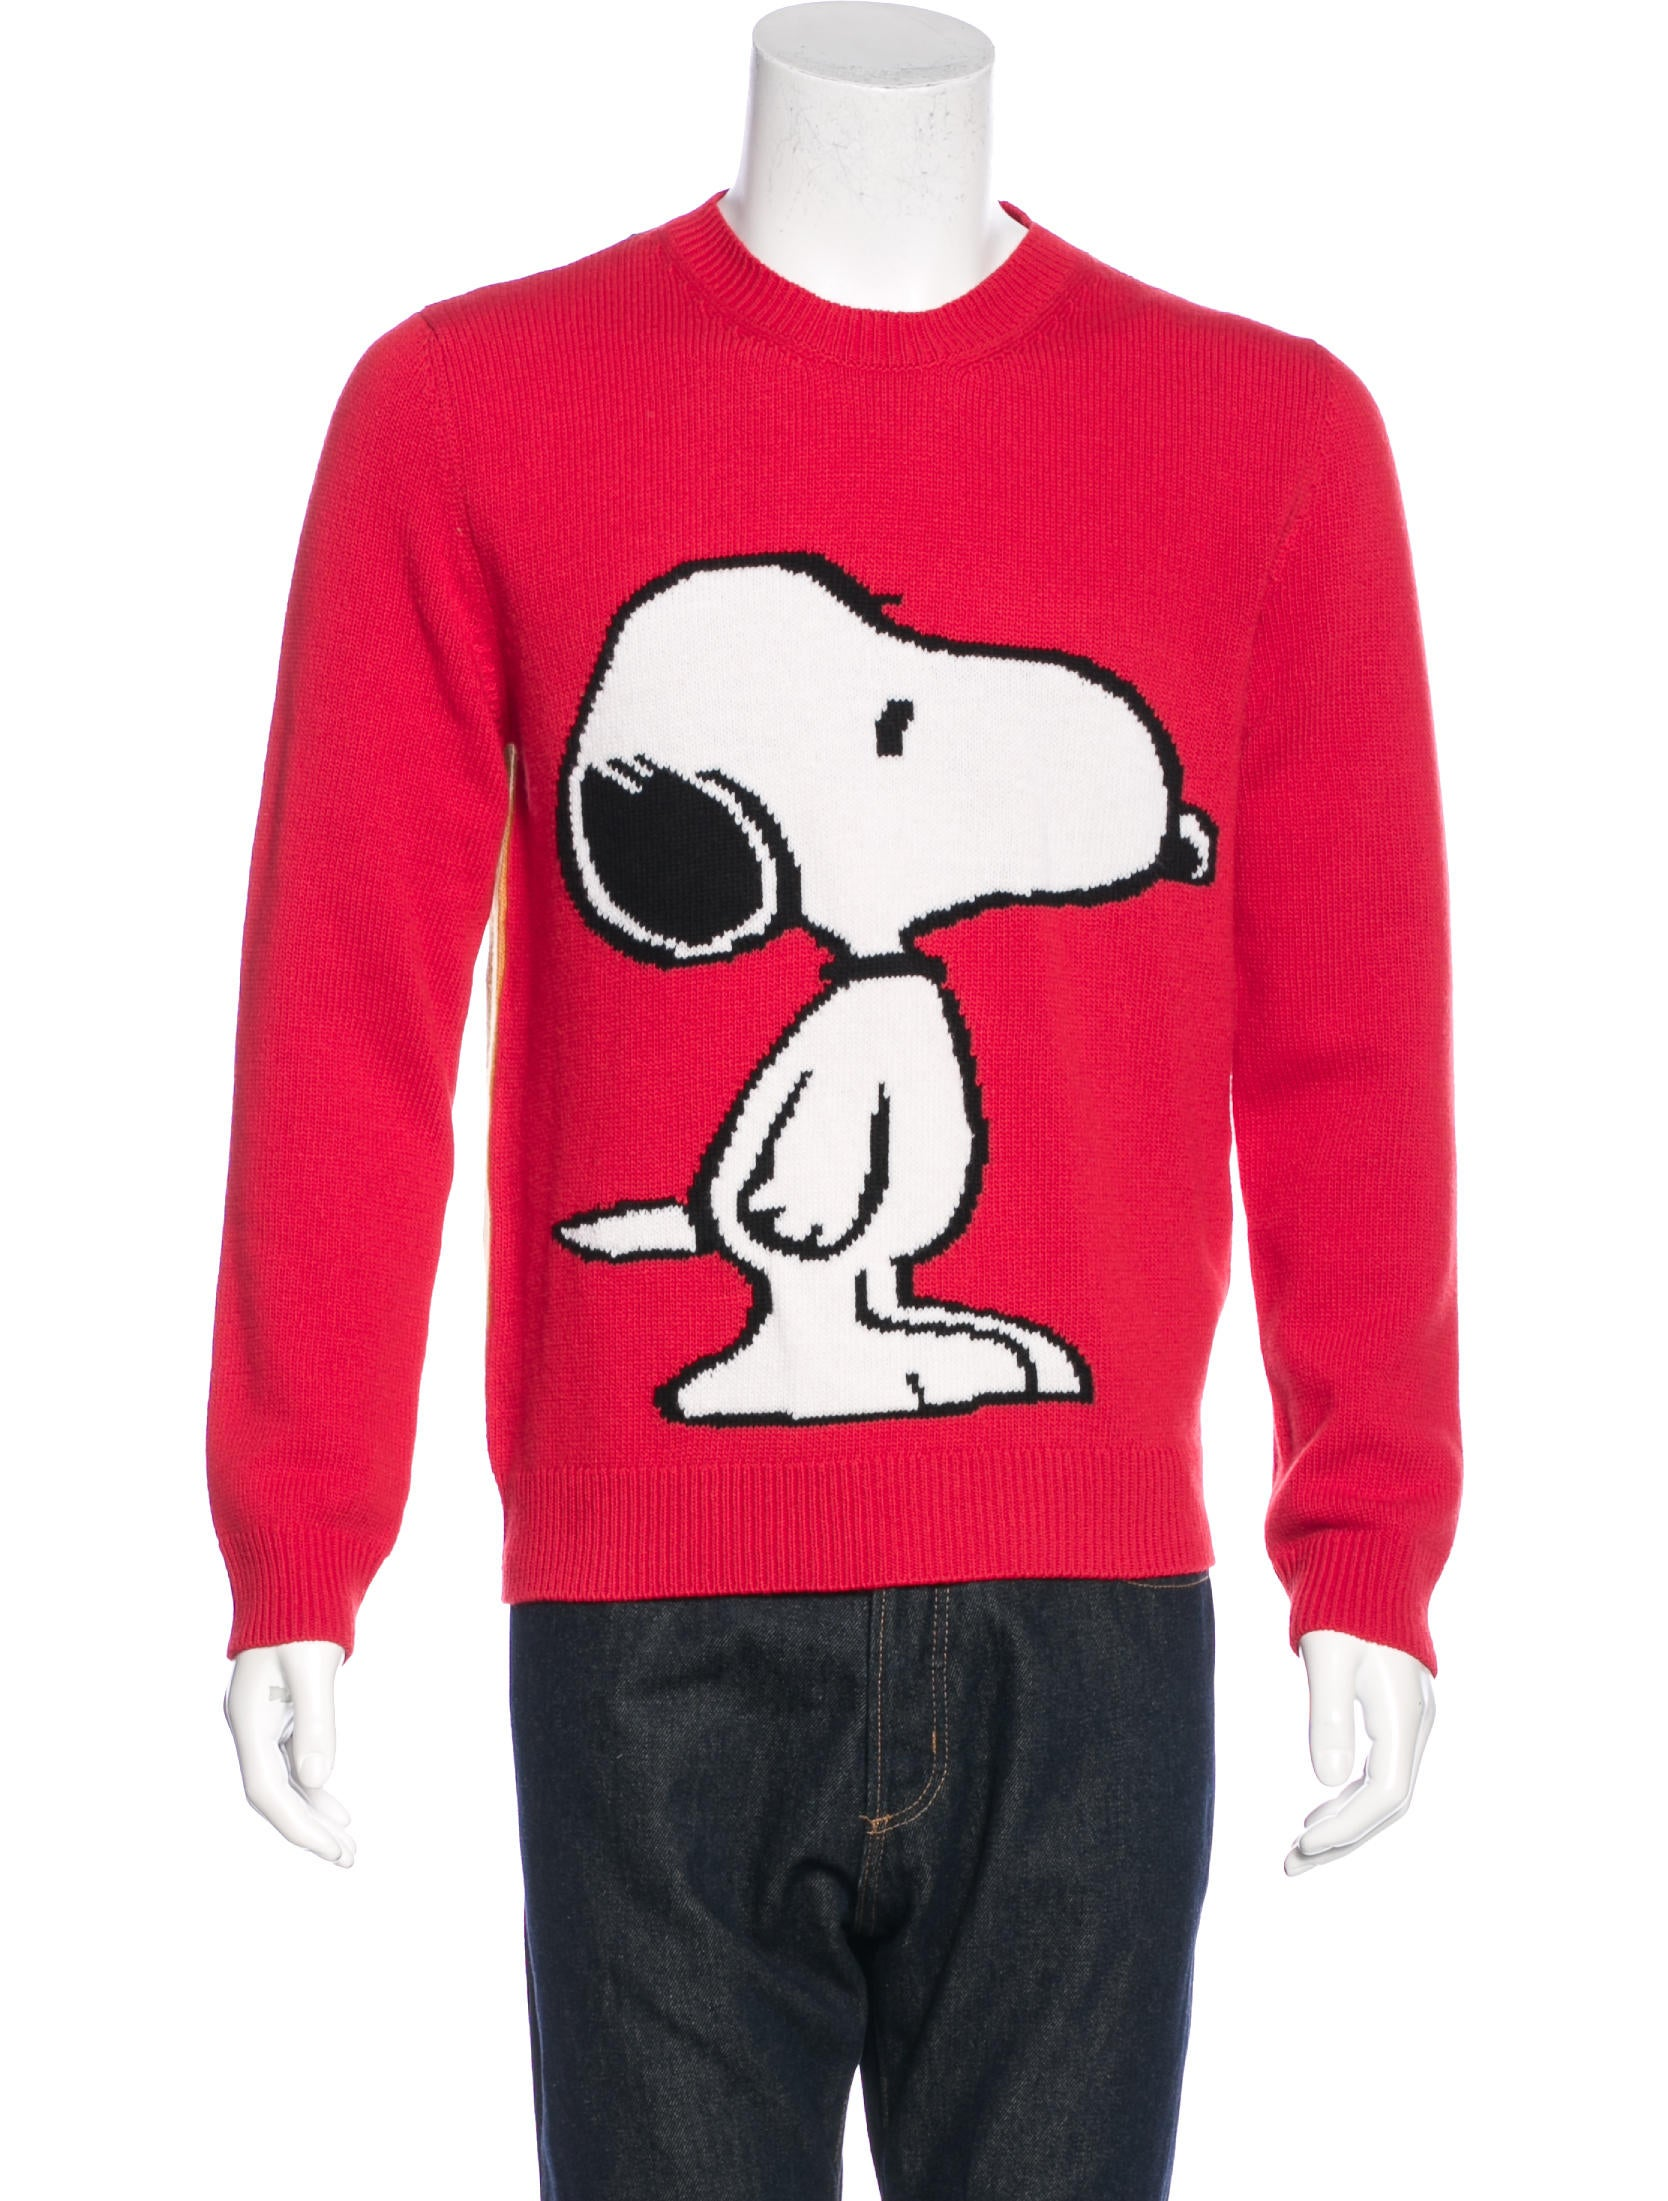 b53a991e4c8 Gucci 2016 Wool Snoopy Sweater w  Tags - Clothing - GUC136398